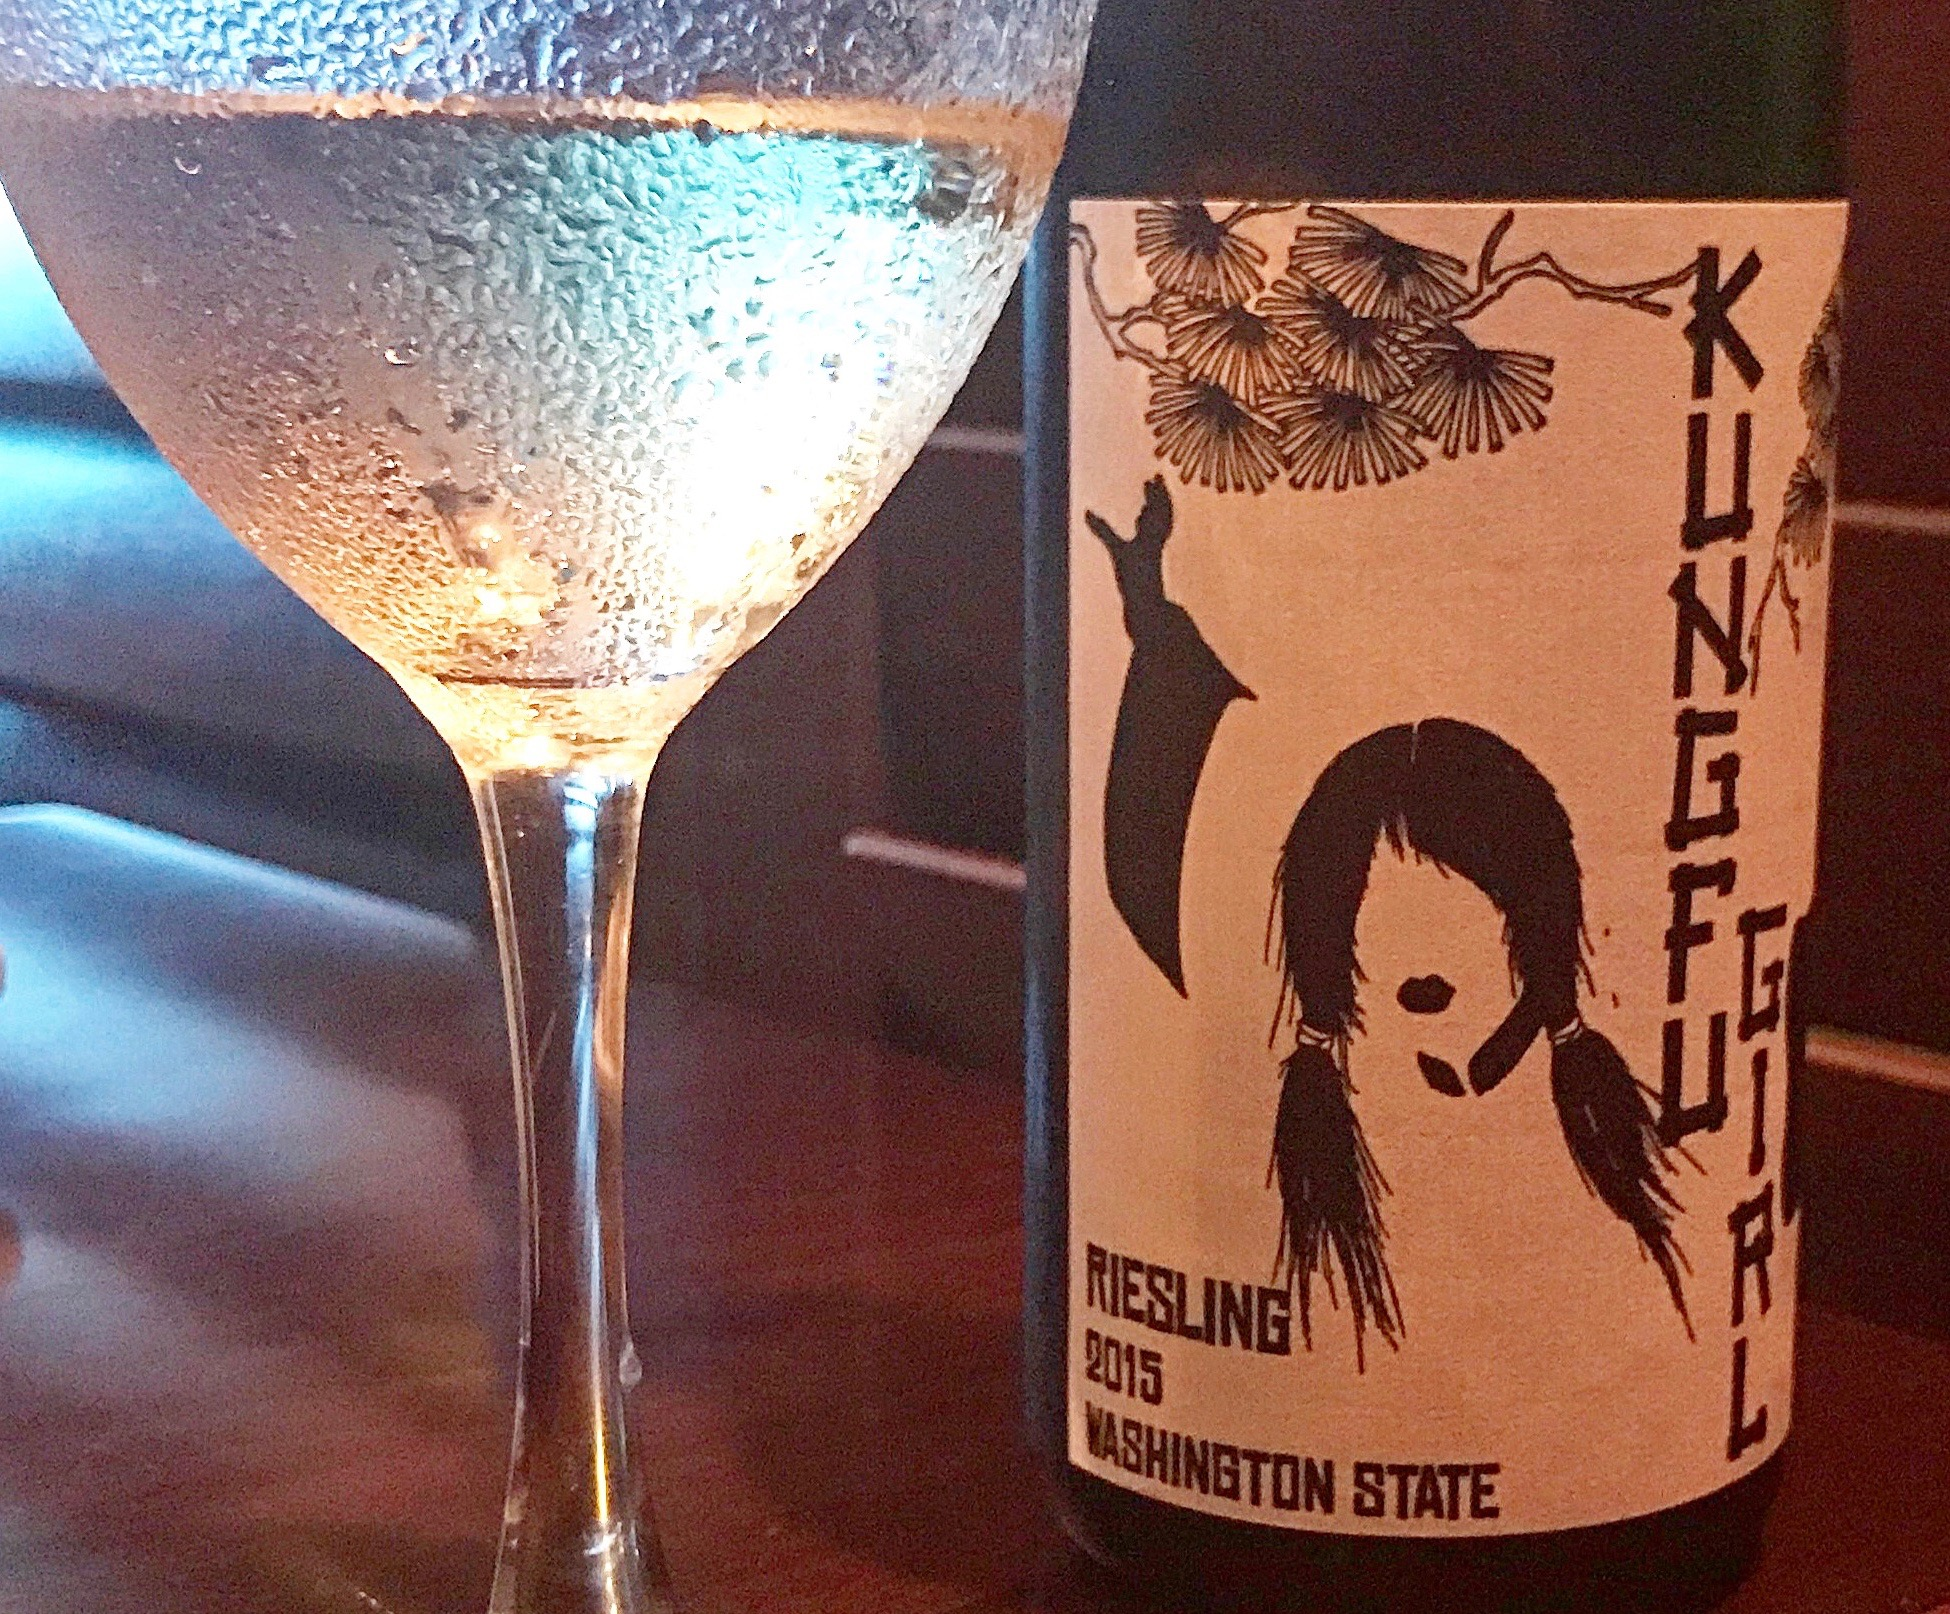 You won't go wrong with this 2015  Kung fu Girl Dry Riesling  by Charles Smith from Washington State. So juicy, refreshing and delicious with big flavors that will stand up to all of your Thanksgiving dishes. And your guests will love the label! ($12)